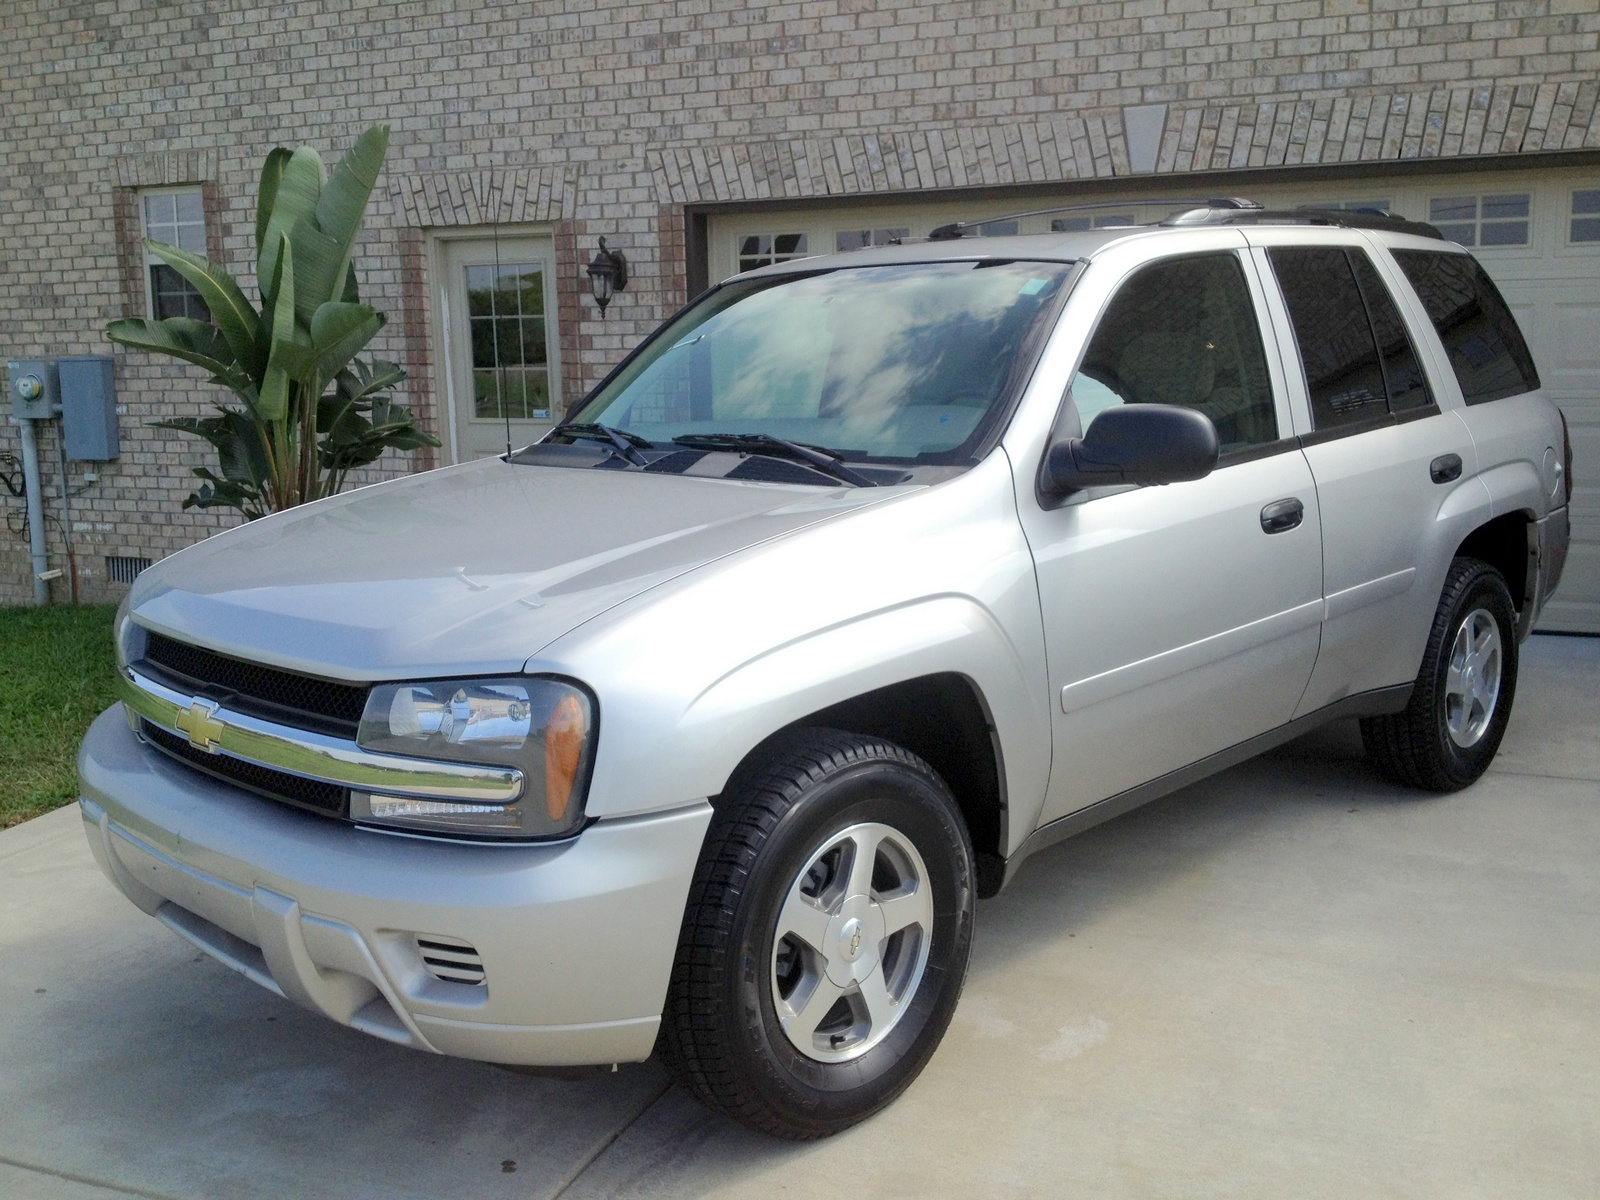 2006 chevrolet trailblazer bing images. Black Bedroom Furniture Sets. Home Design Ideas